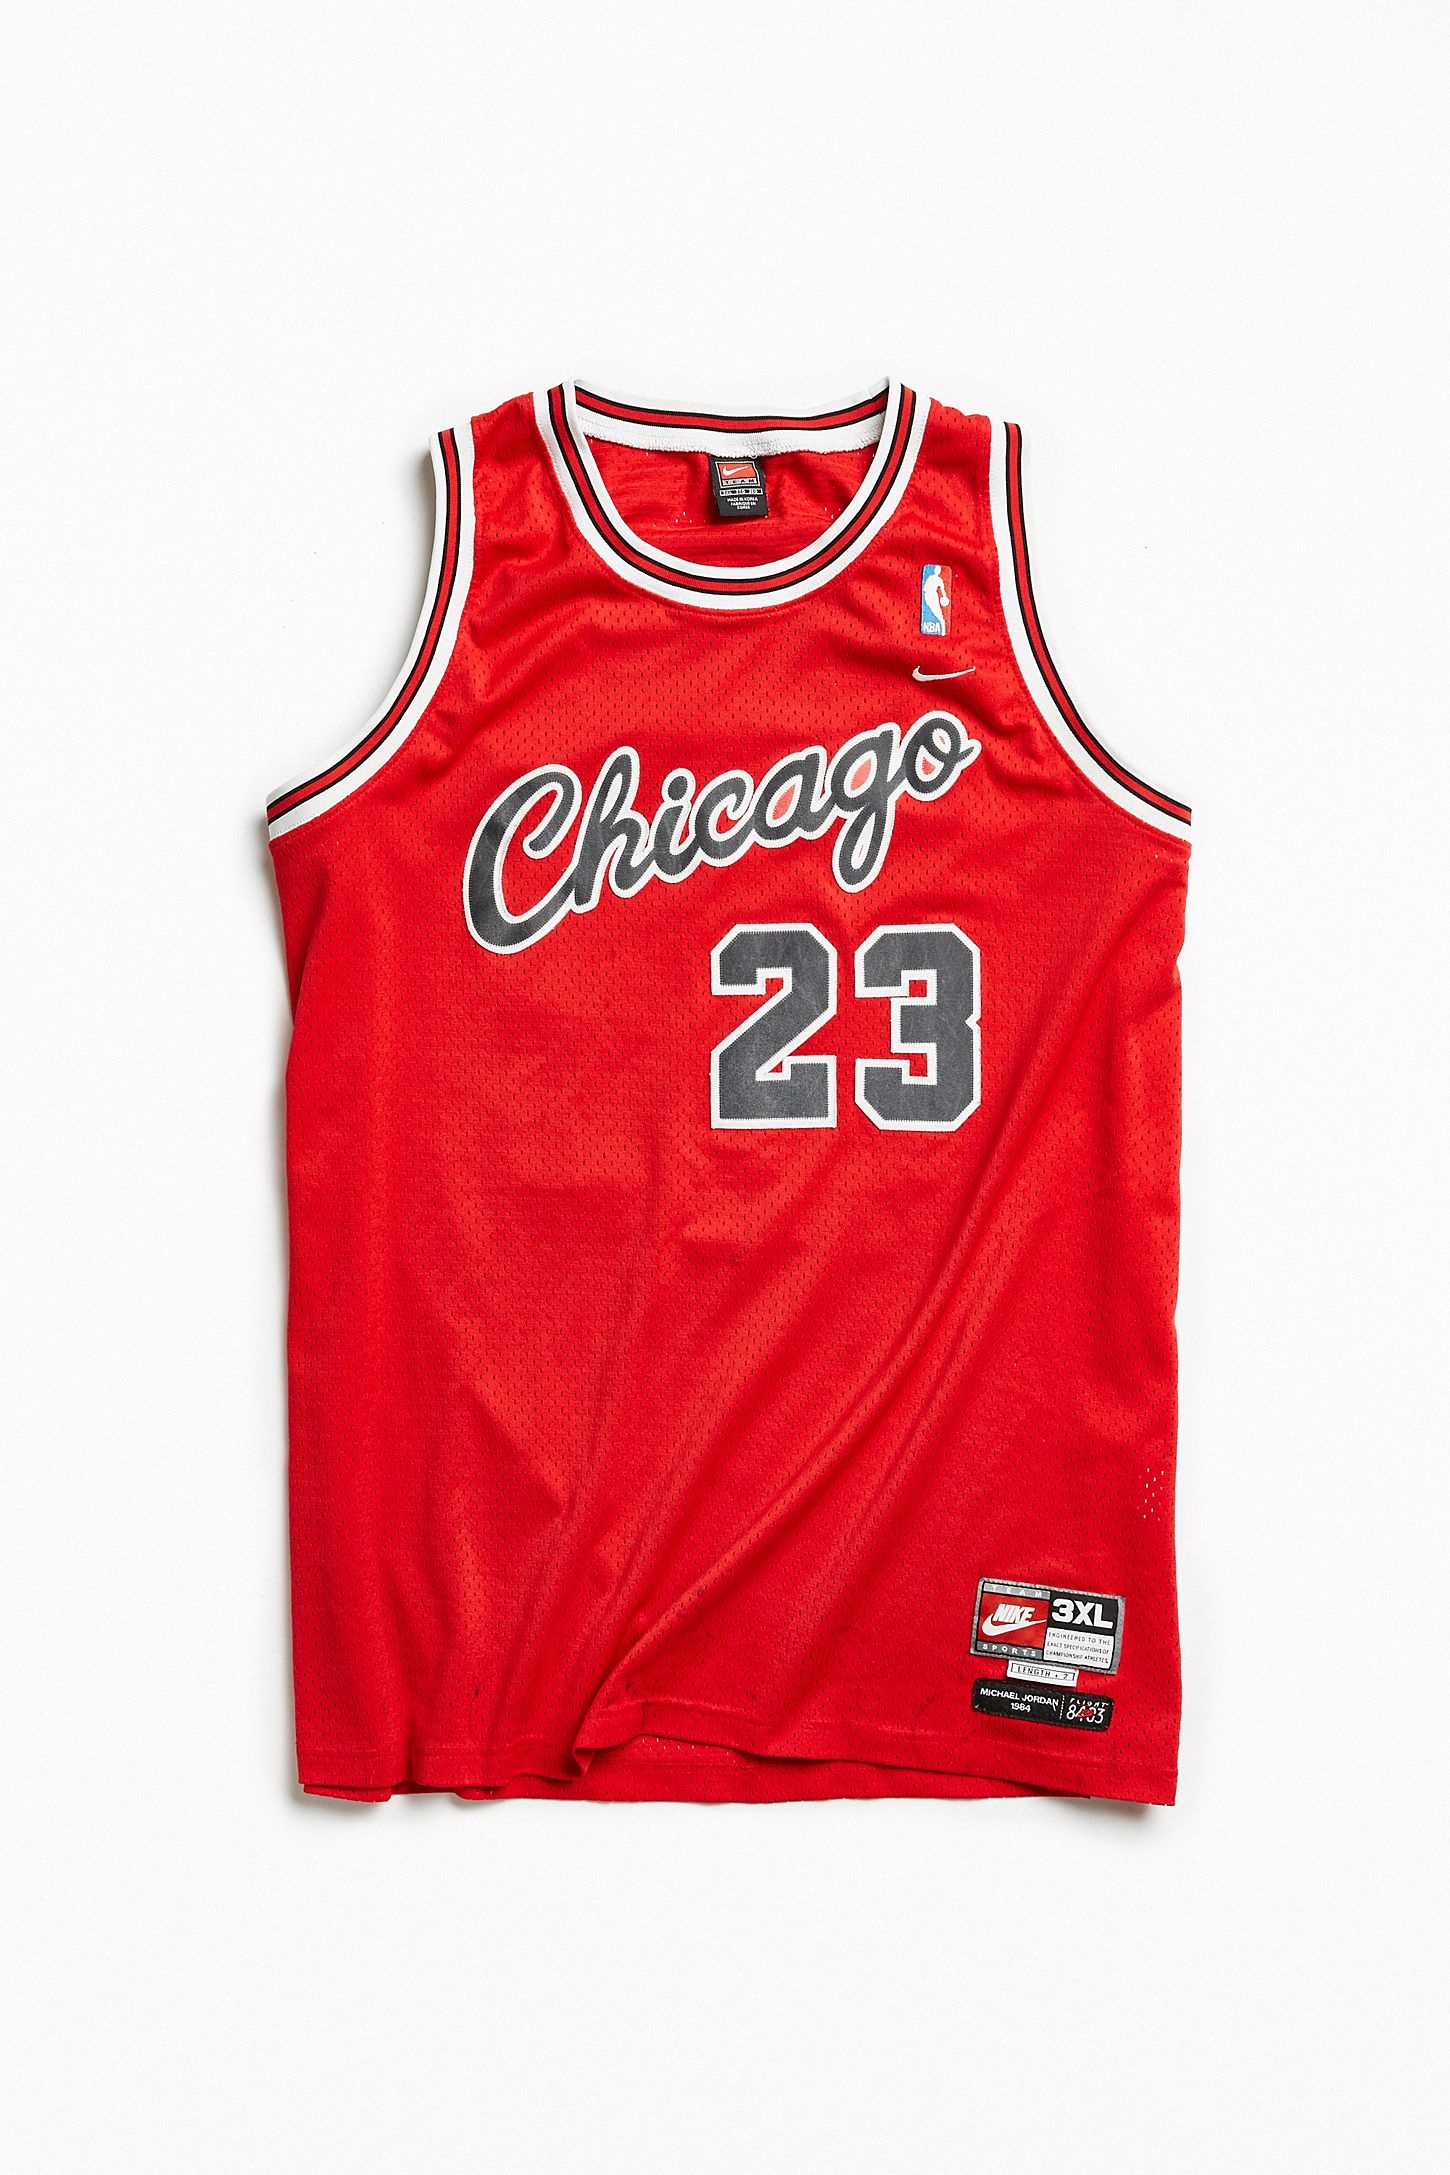 12a04fbb5c6 Vintage Michael Jordan Bulls 3XL Jersey. Tap image to zoom. Hover to zoom.  Double Tap to Zoom